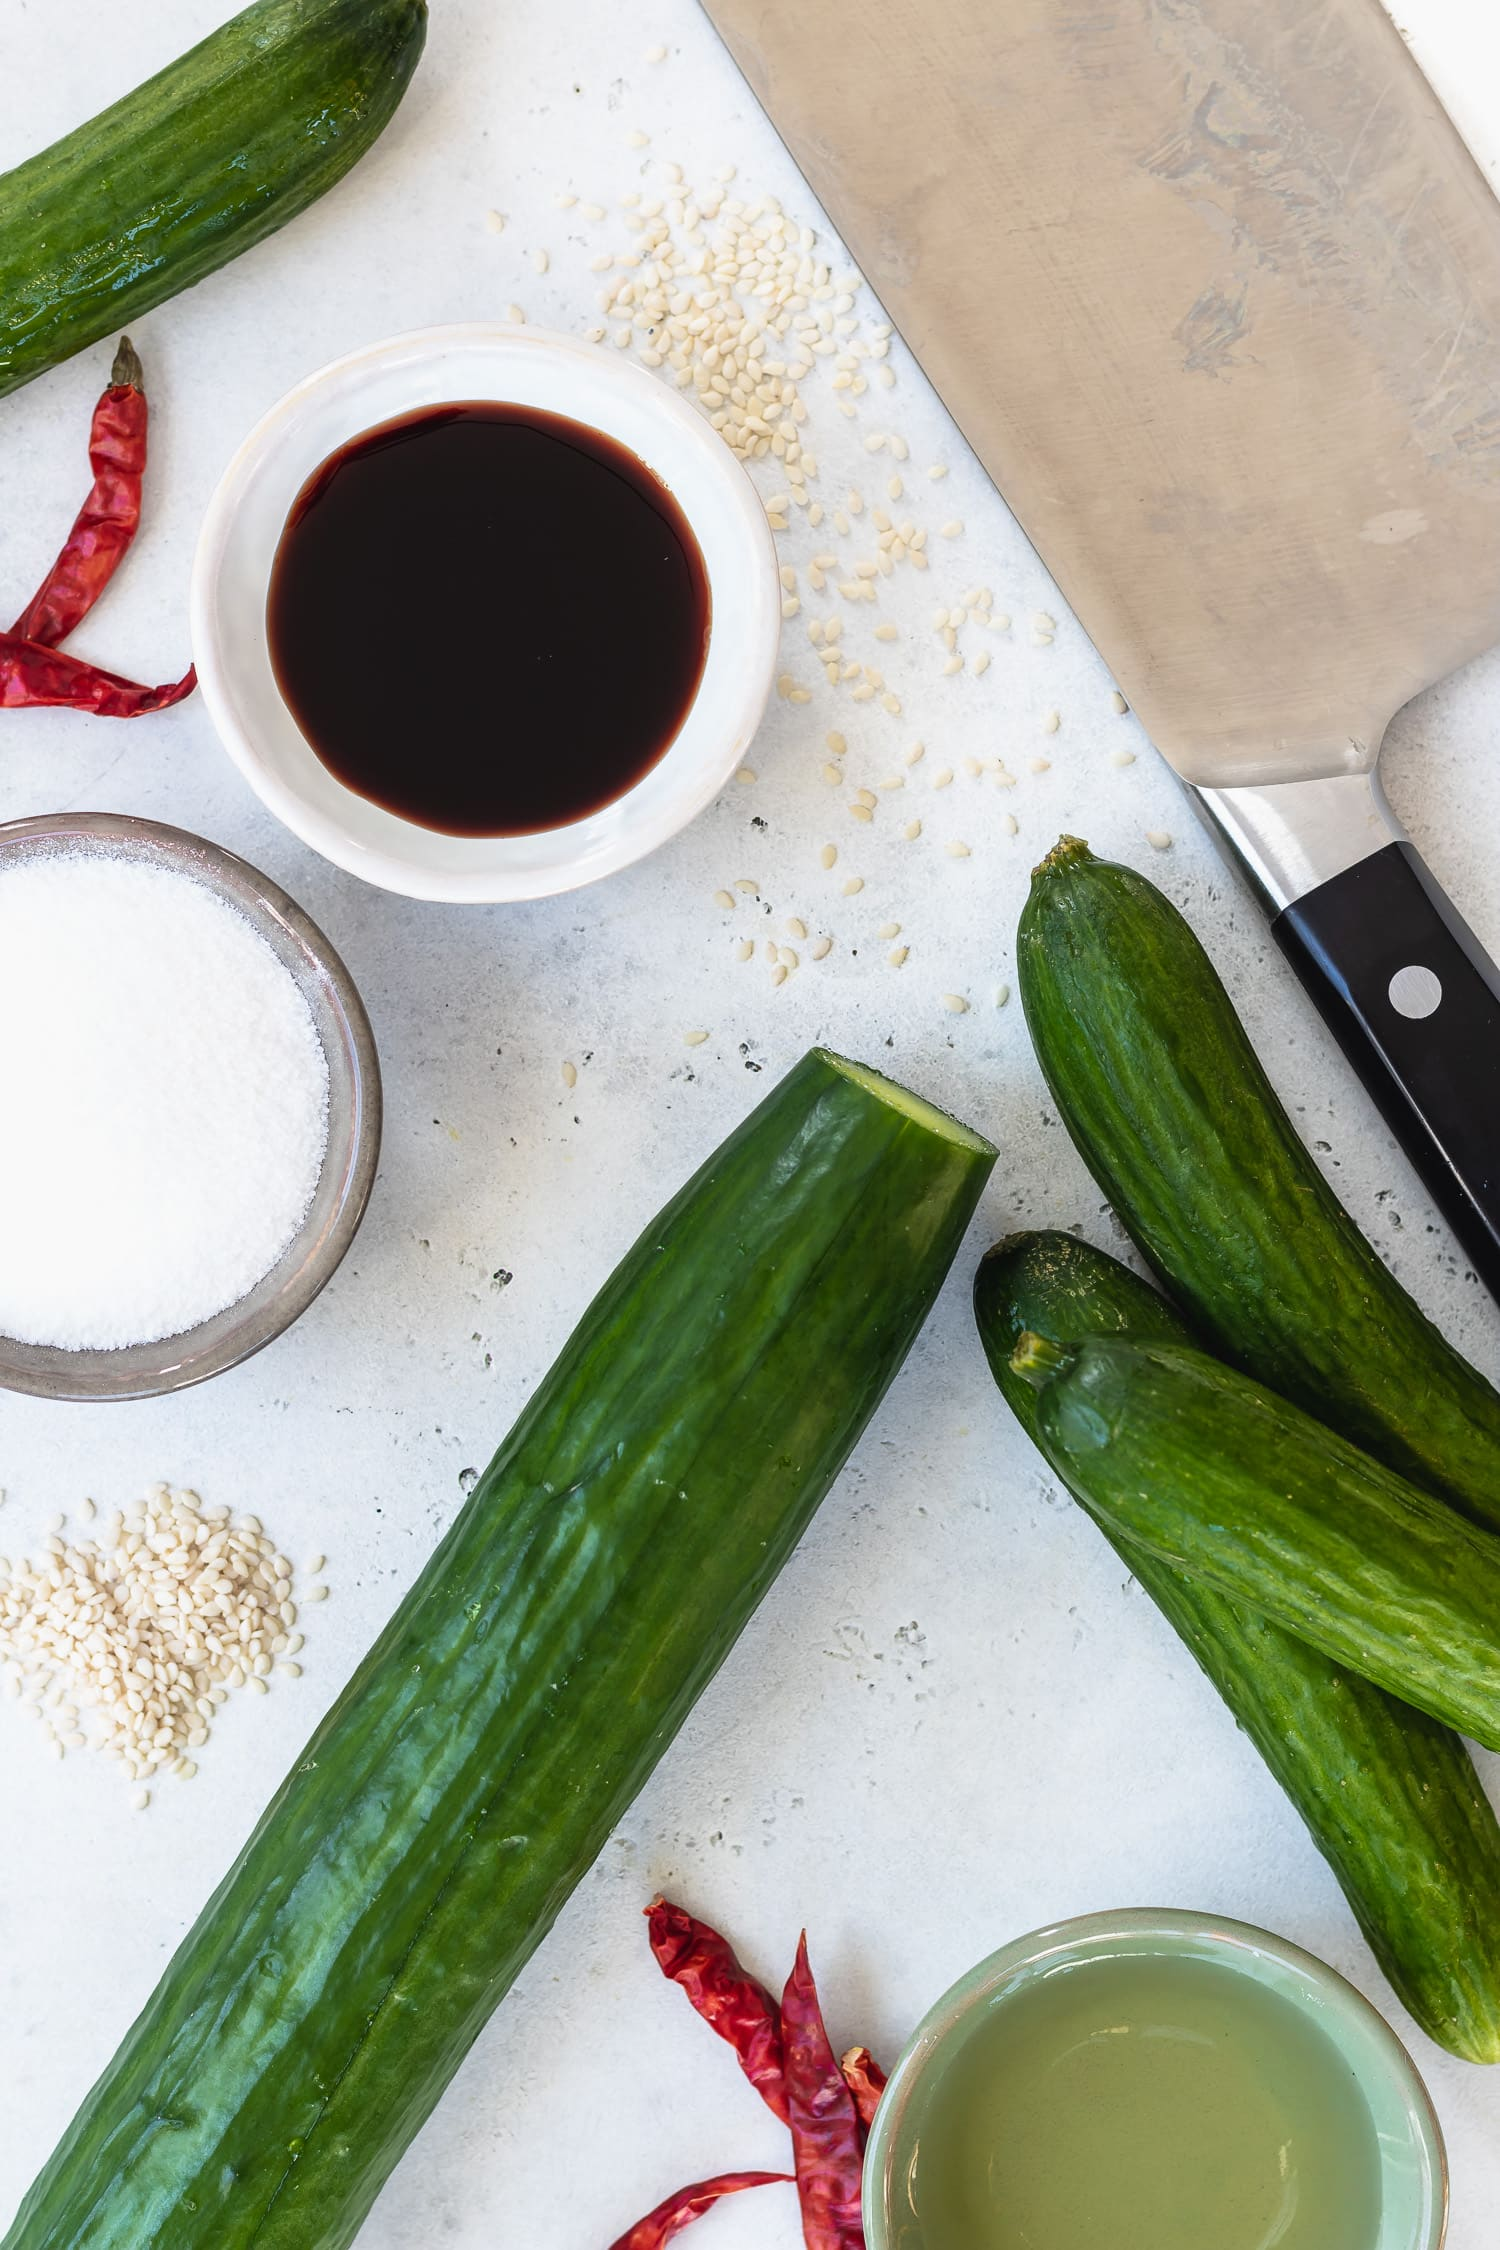 cucumbers, ingredients, and a cleaver